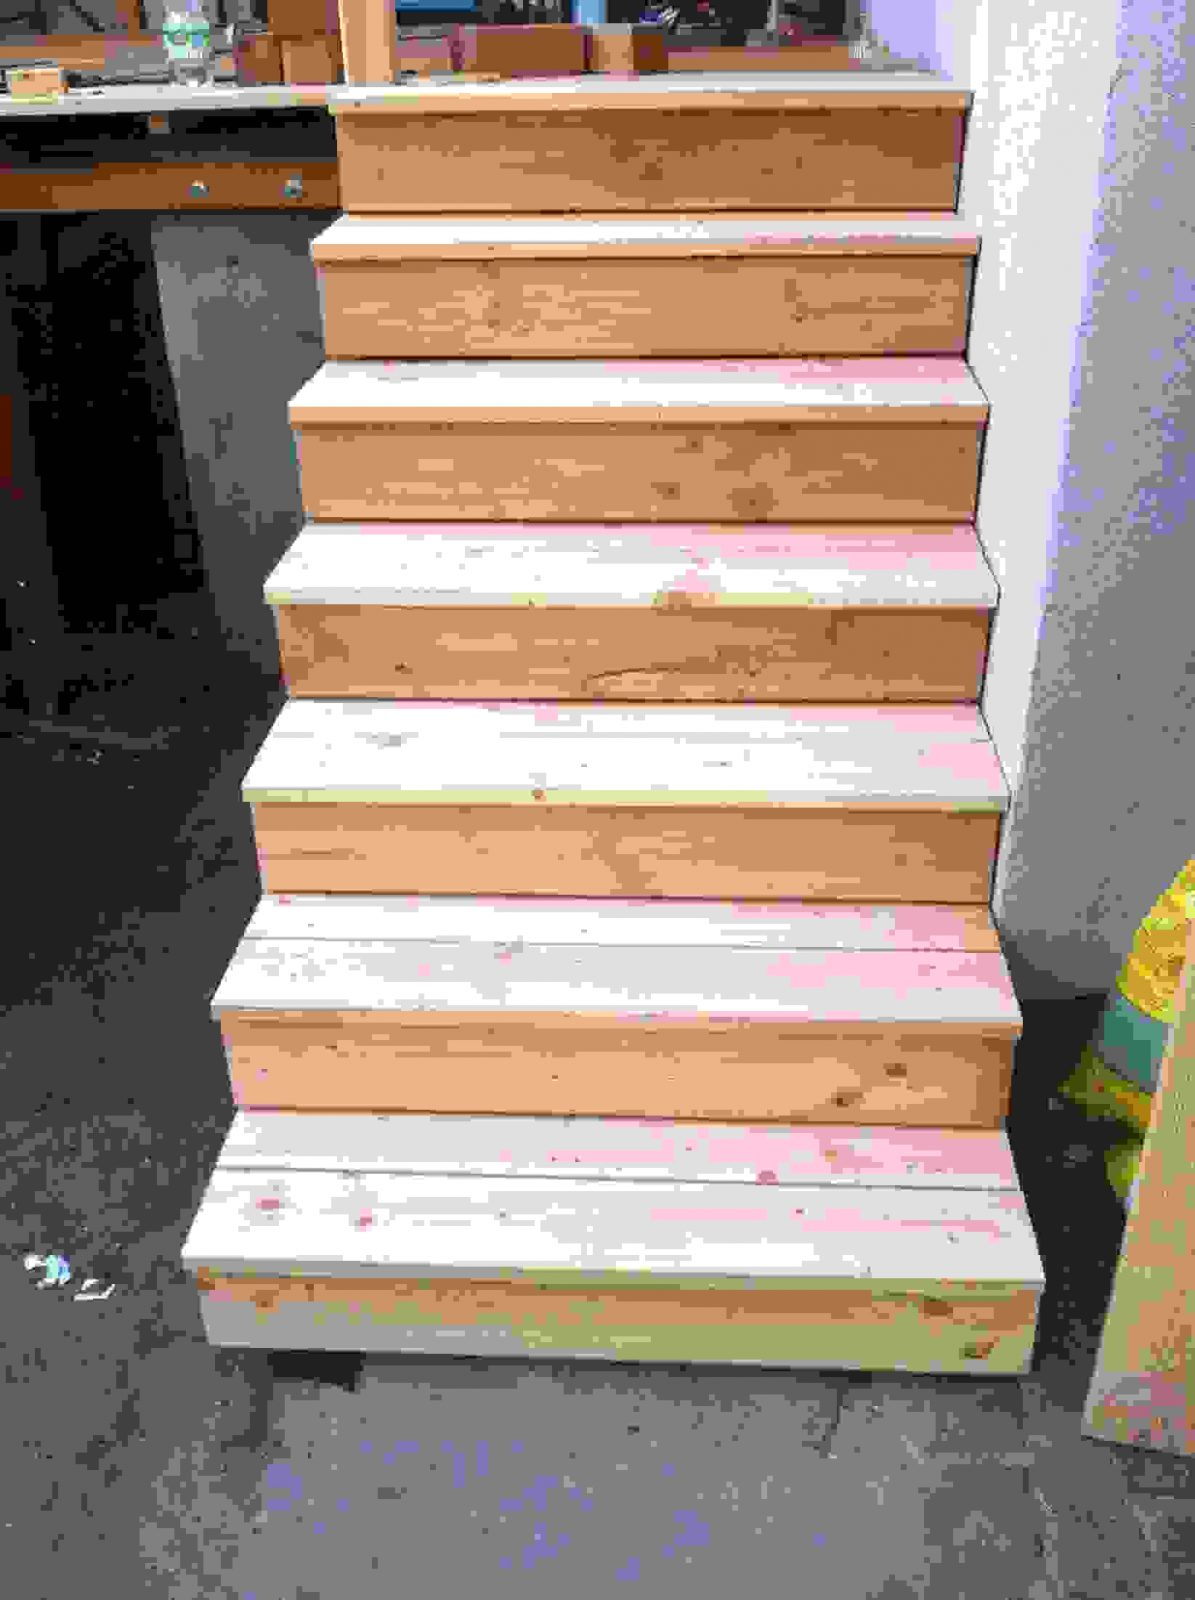 Tolle 40 Treppe Selber Bauen Holz Ideen  Einzigartiger Garten von Treppen Selber Bauen Holz Bild